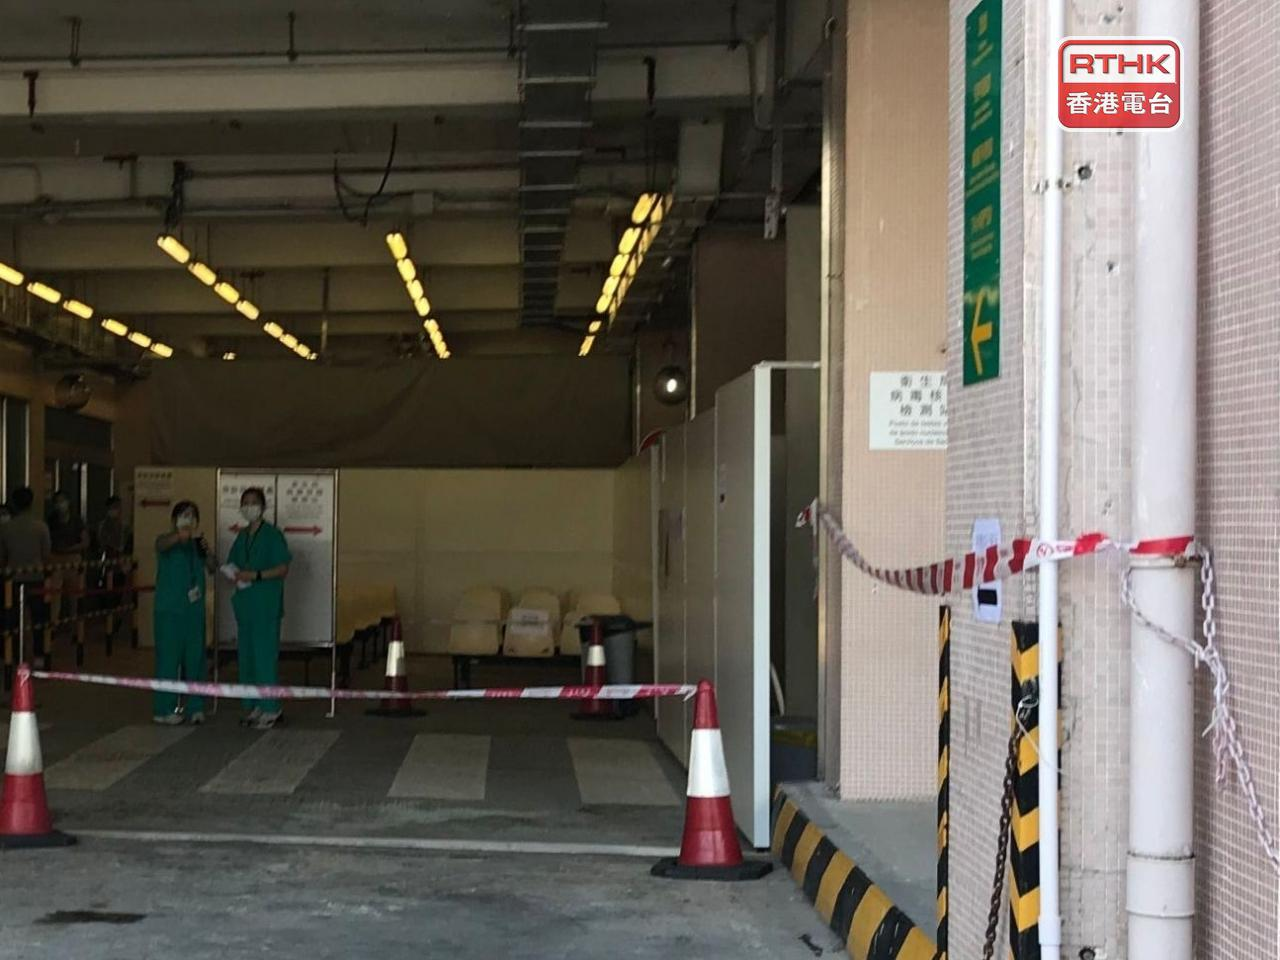 The Macau government says it aims to finish testing its population in 72 hours. Photo: RTHK